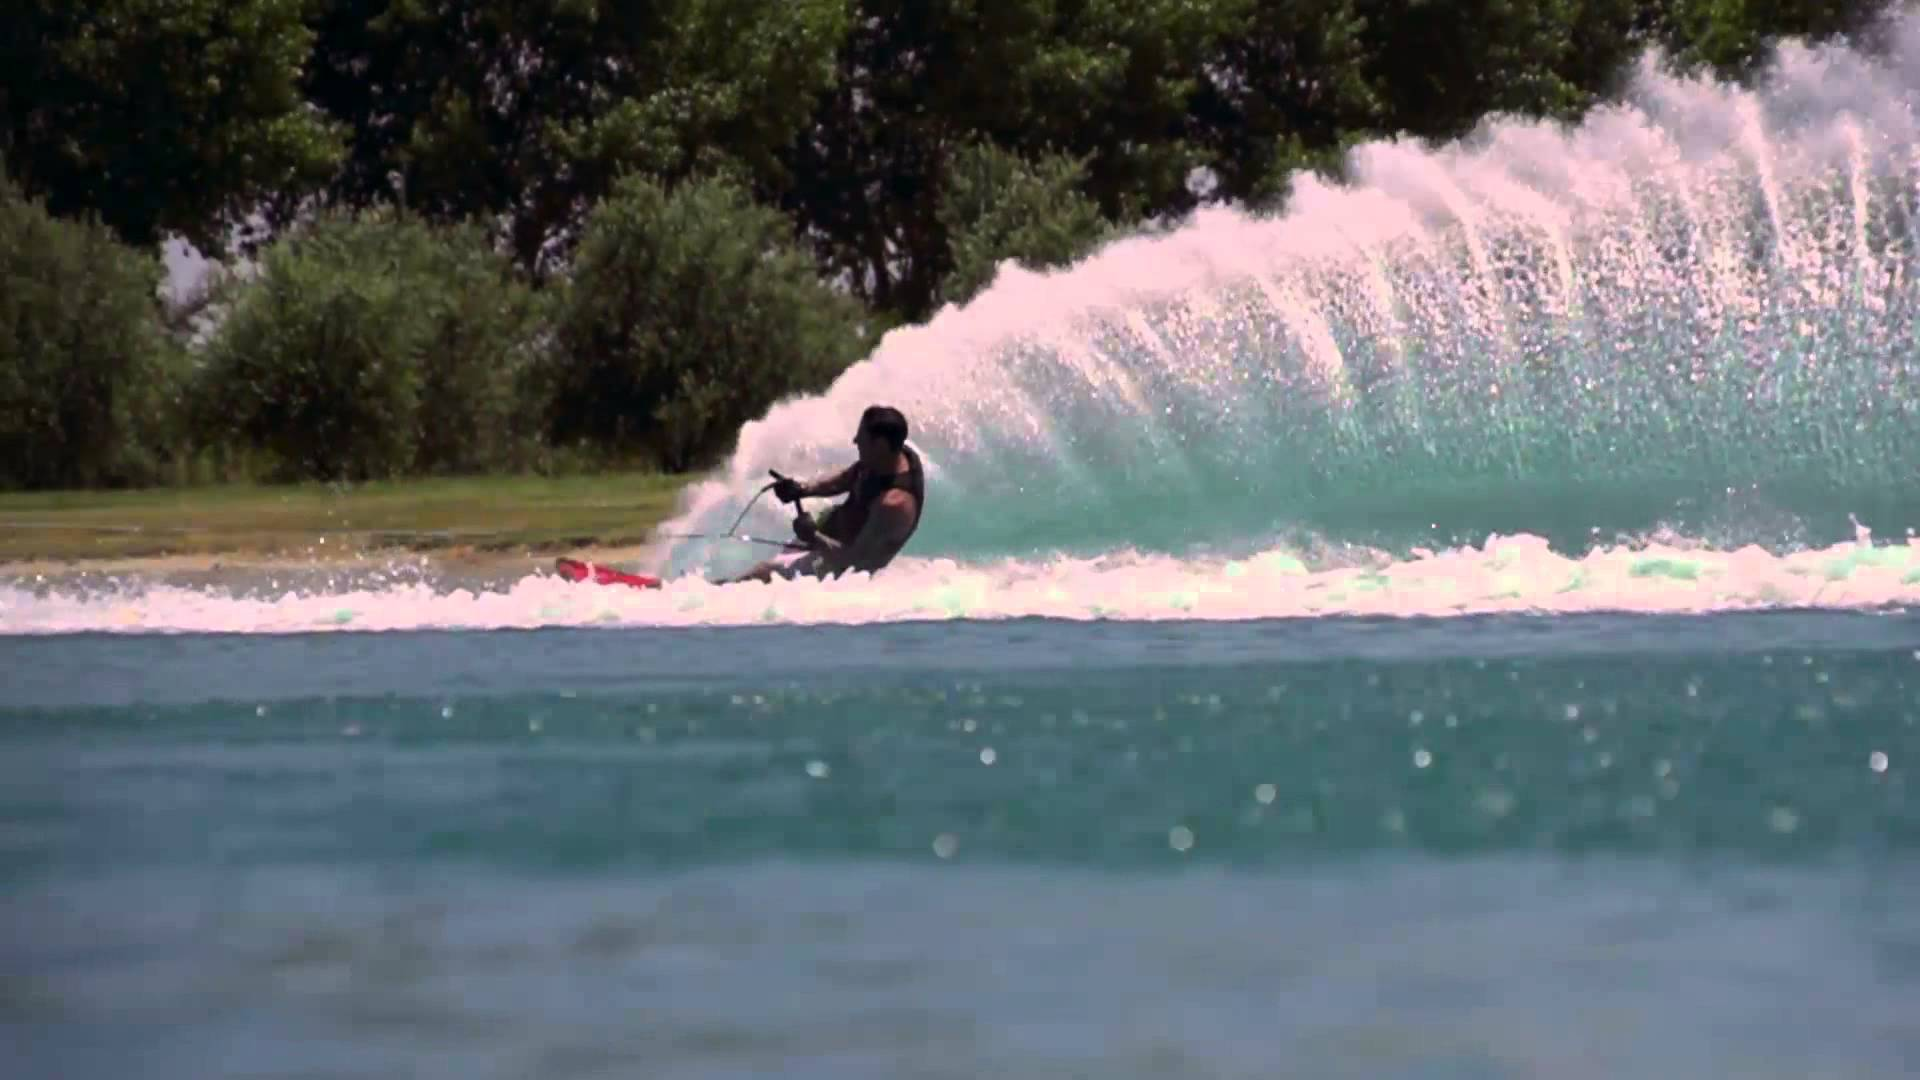 Trent Finlayson joins to HO Water Ski Team